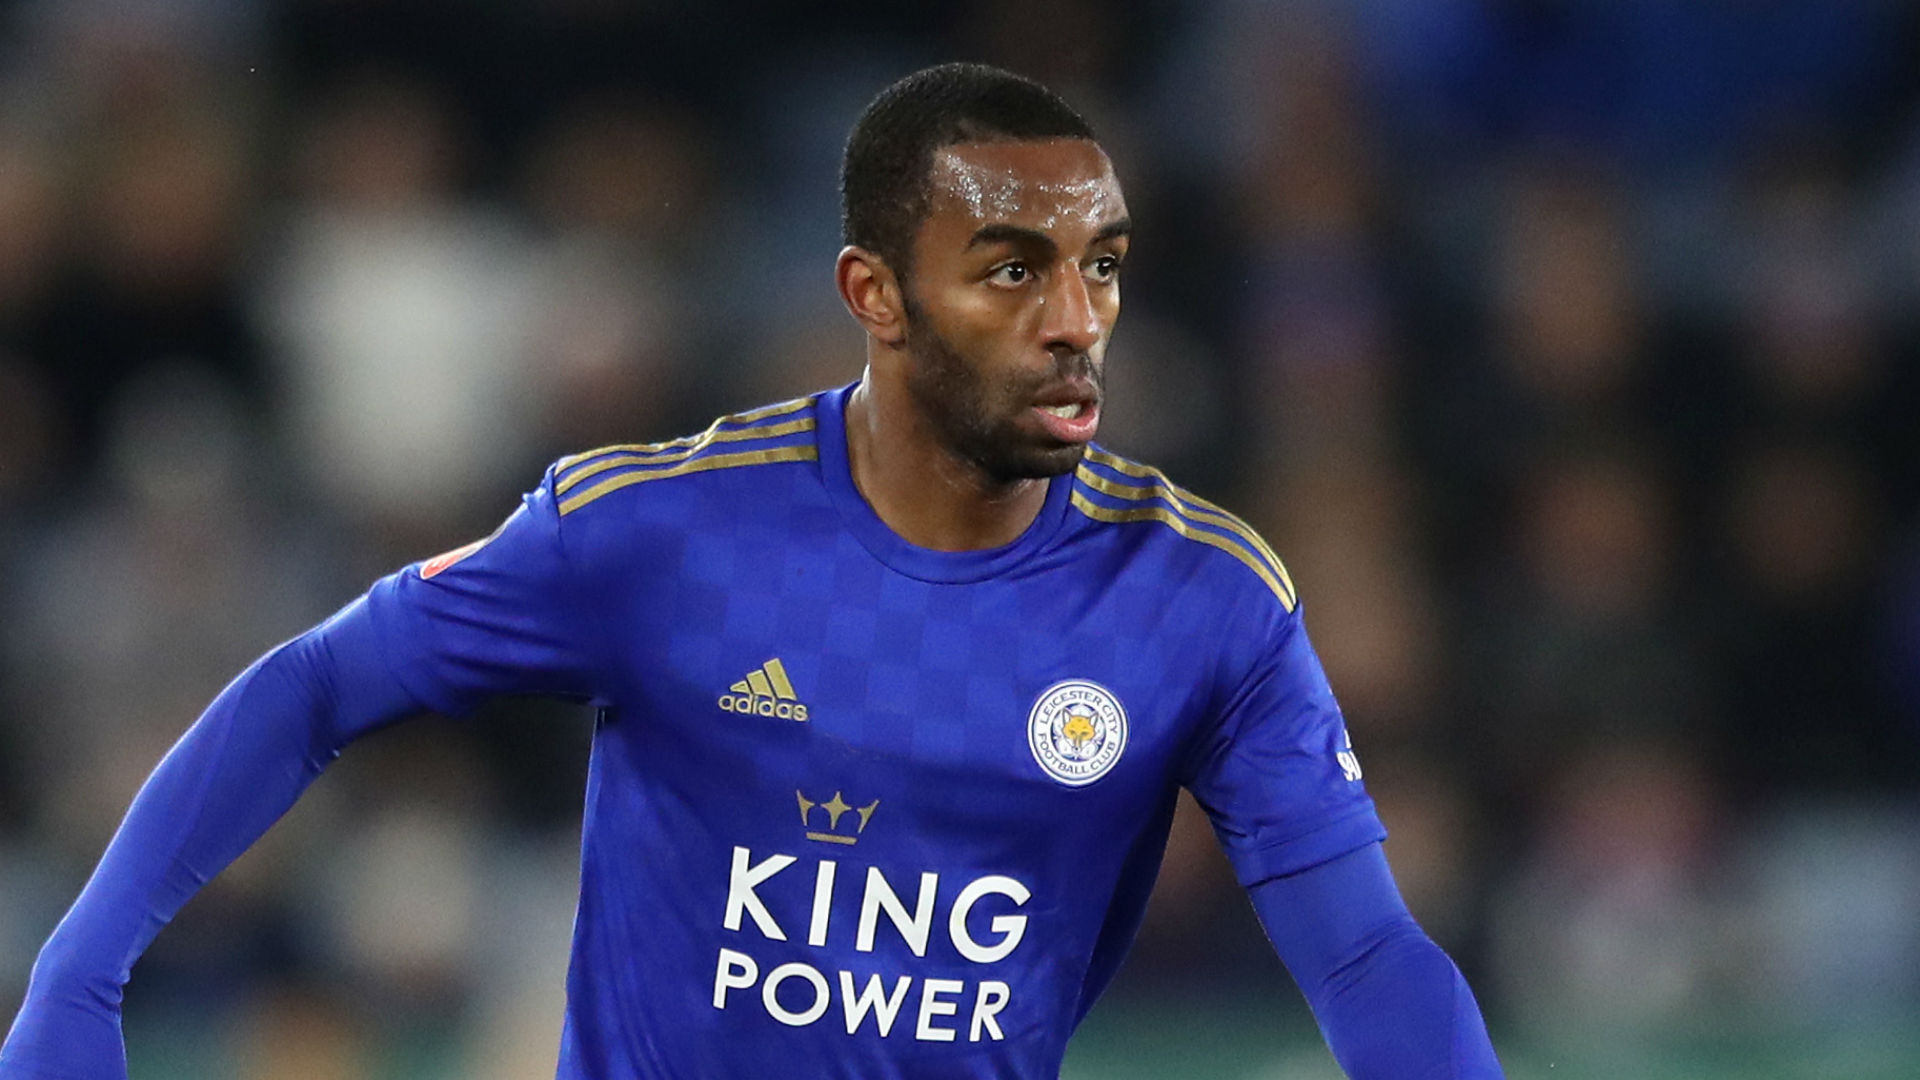 Ricardo Pereira out for season, likely to miss Euro 2020 with ACL damage